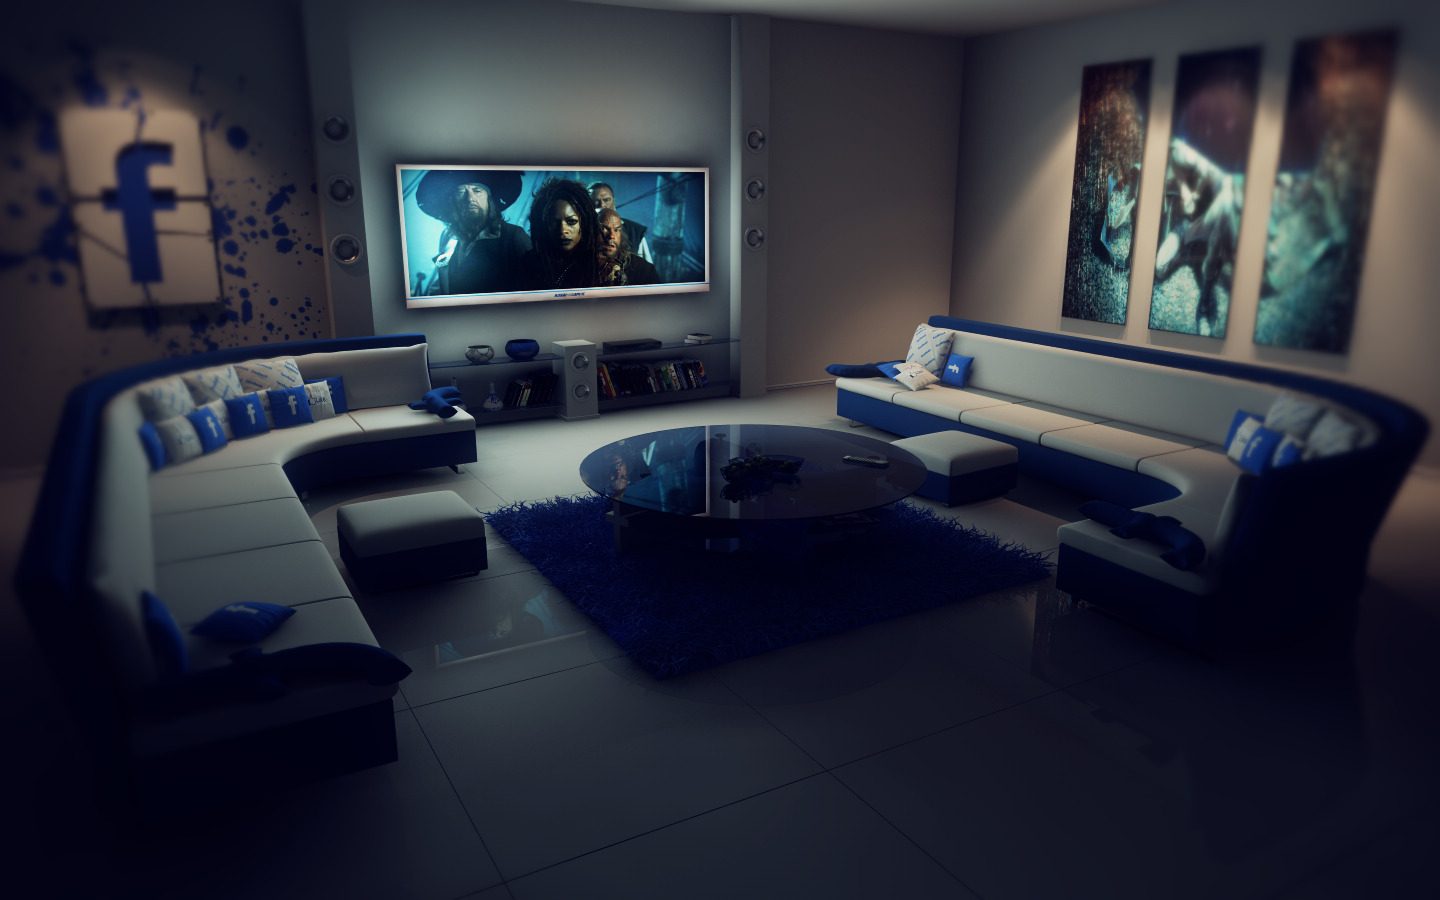 Facebook living room at night ps by slographic on deviantart for Living room night